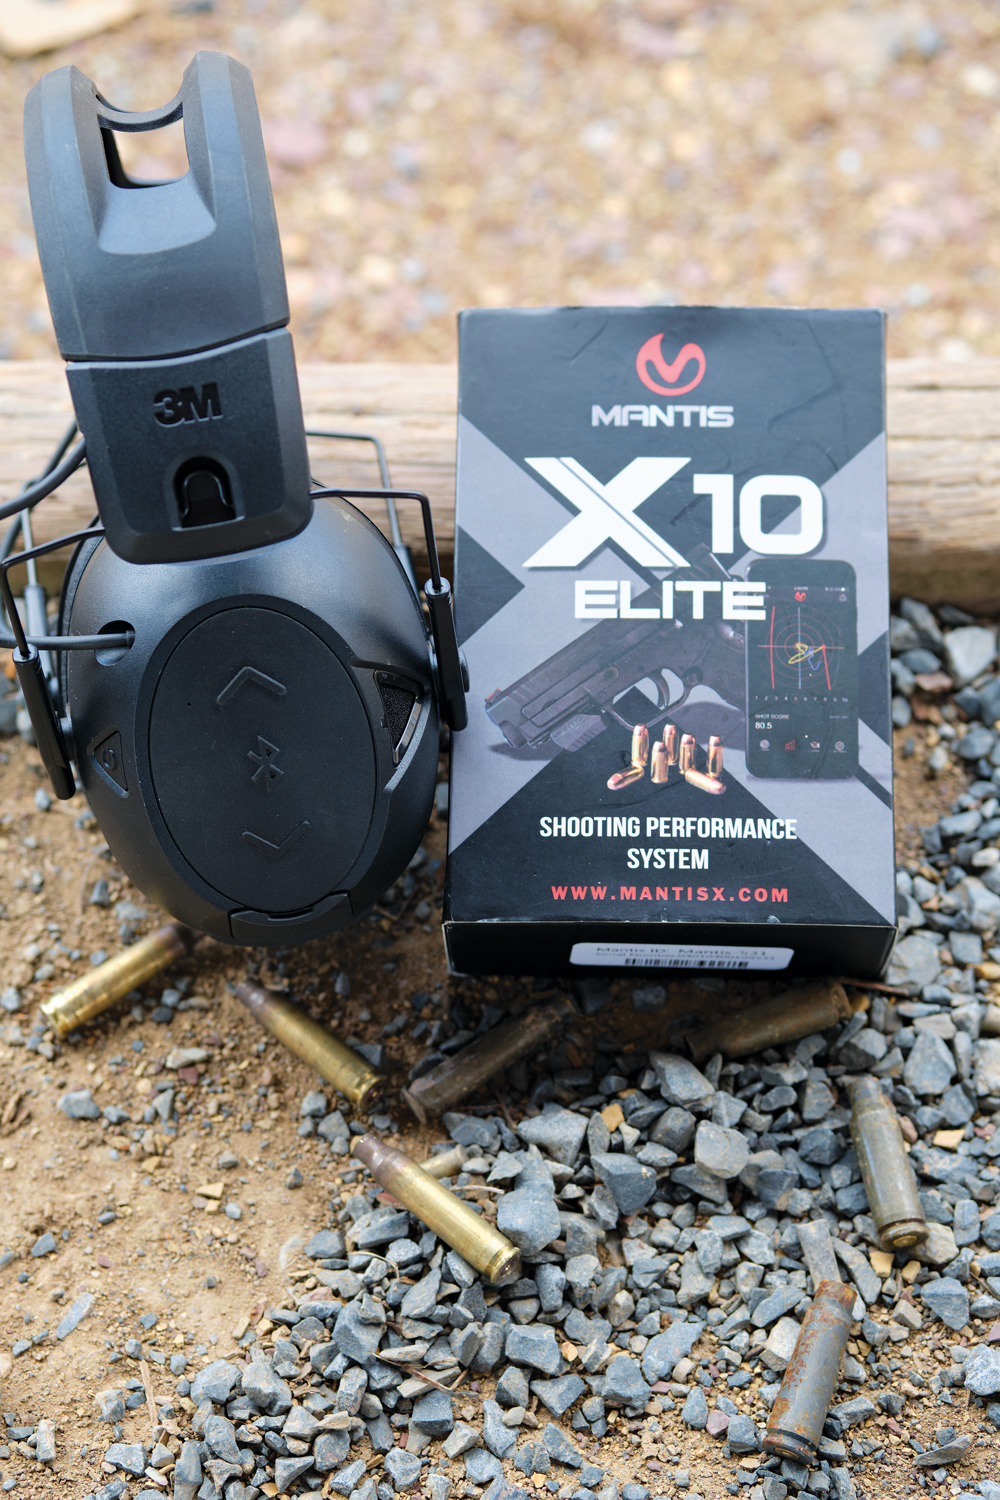 When paired with headphones that offer Bluetooth connectivity (such as the Peltor Tactical Sport 500), the MantisX will provide commands, prompts and feedback directly through your hearing protection.